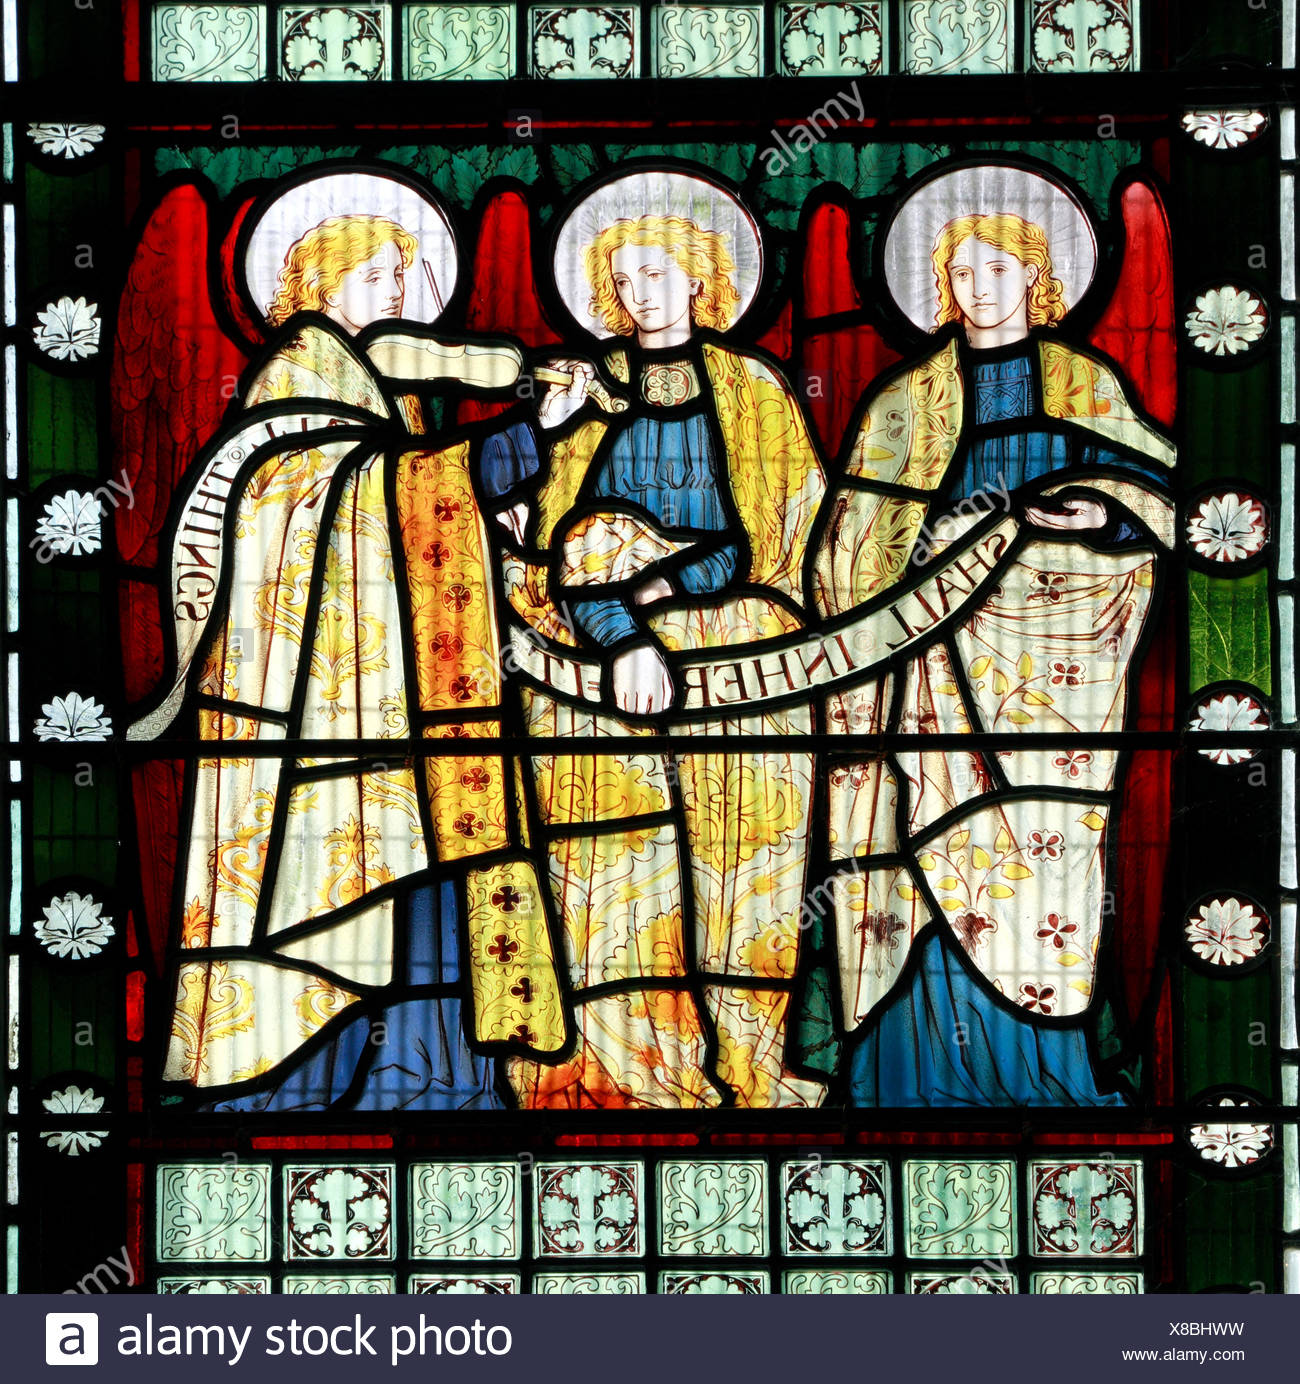 Angels stained glass by Henry Holiday, Holliday, 1873, pre-Raphaelite style, Stanhoe, Norfolk England UK - Stock Image